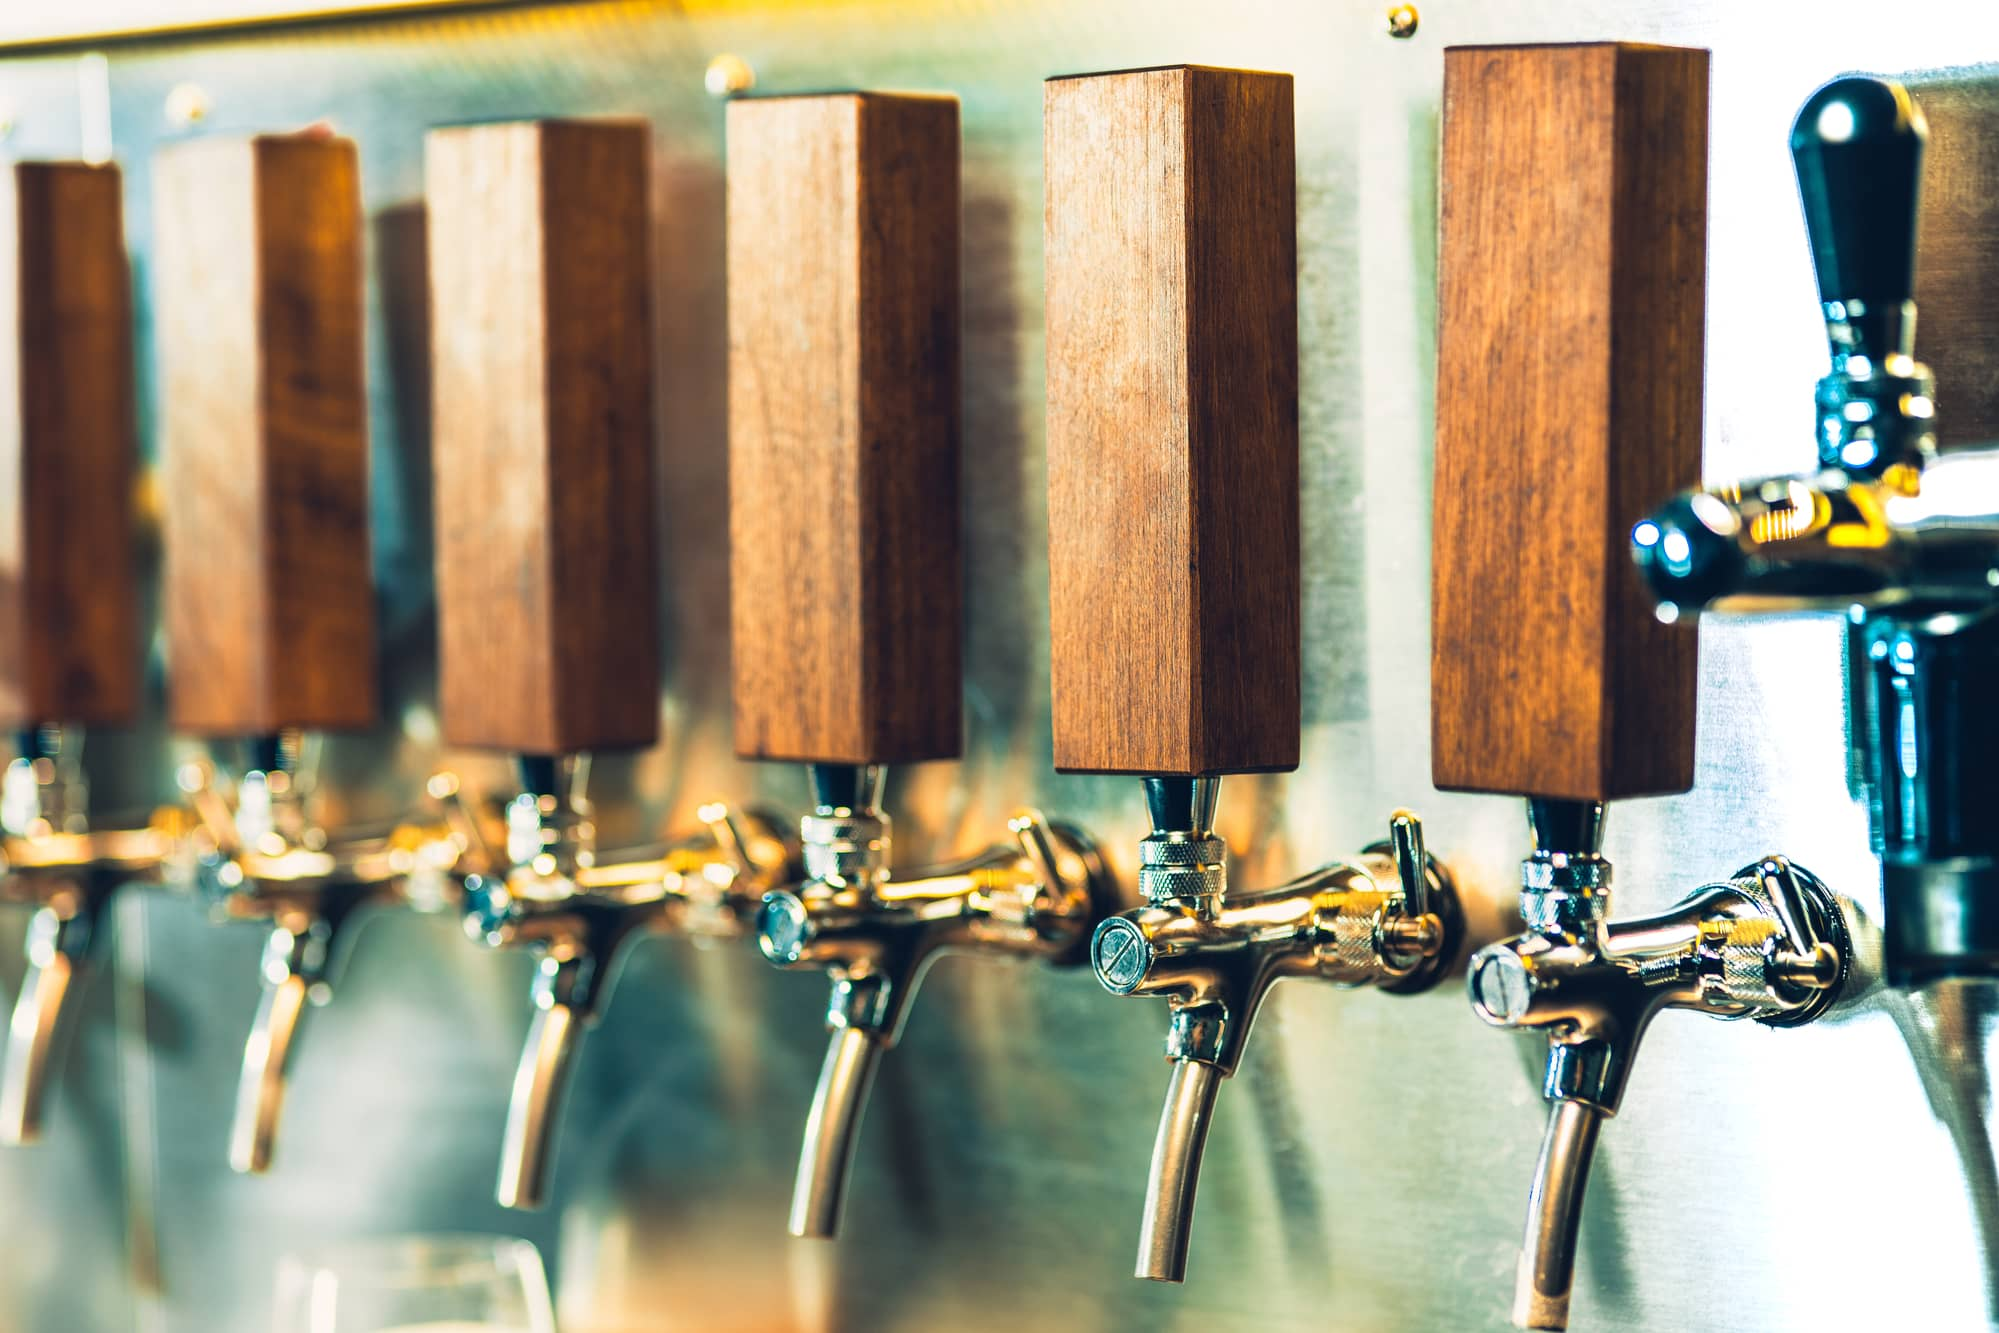 How To Make A Beer Tap Handle